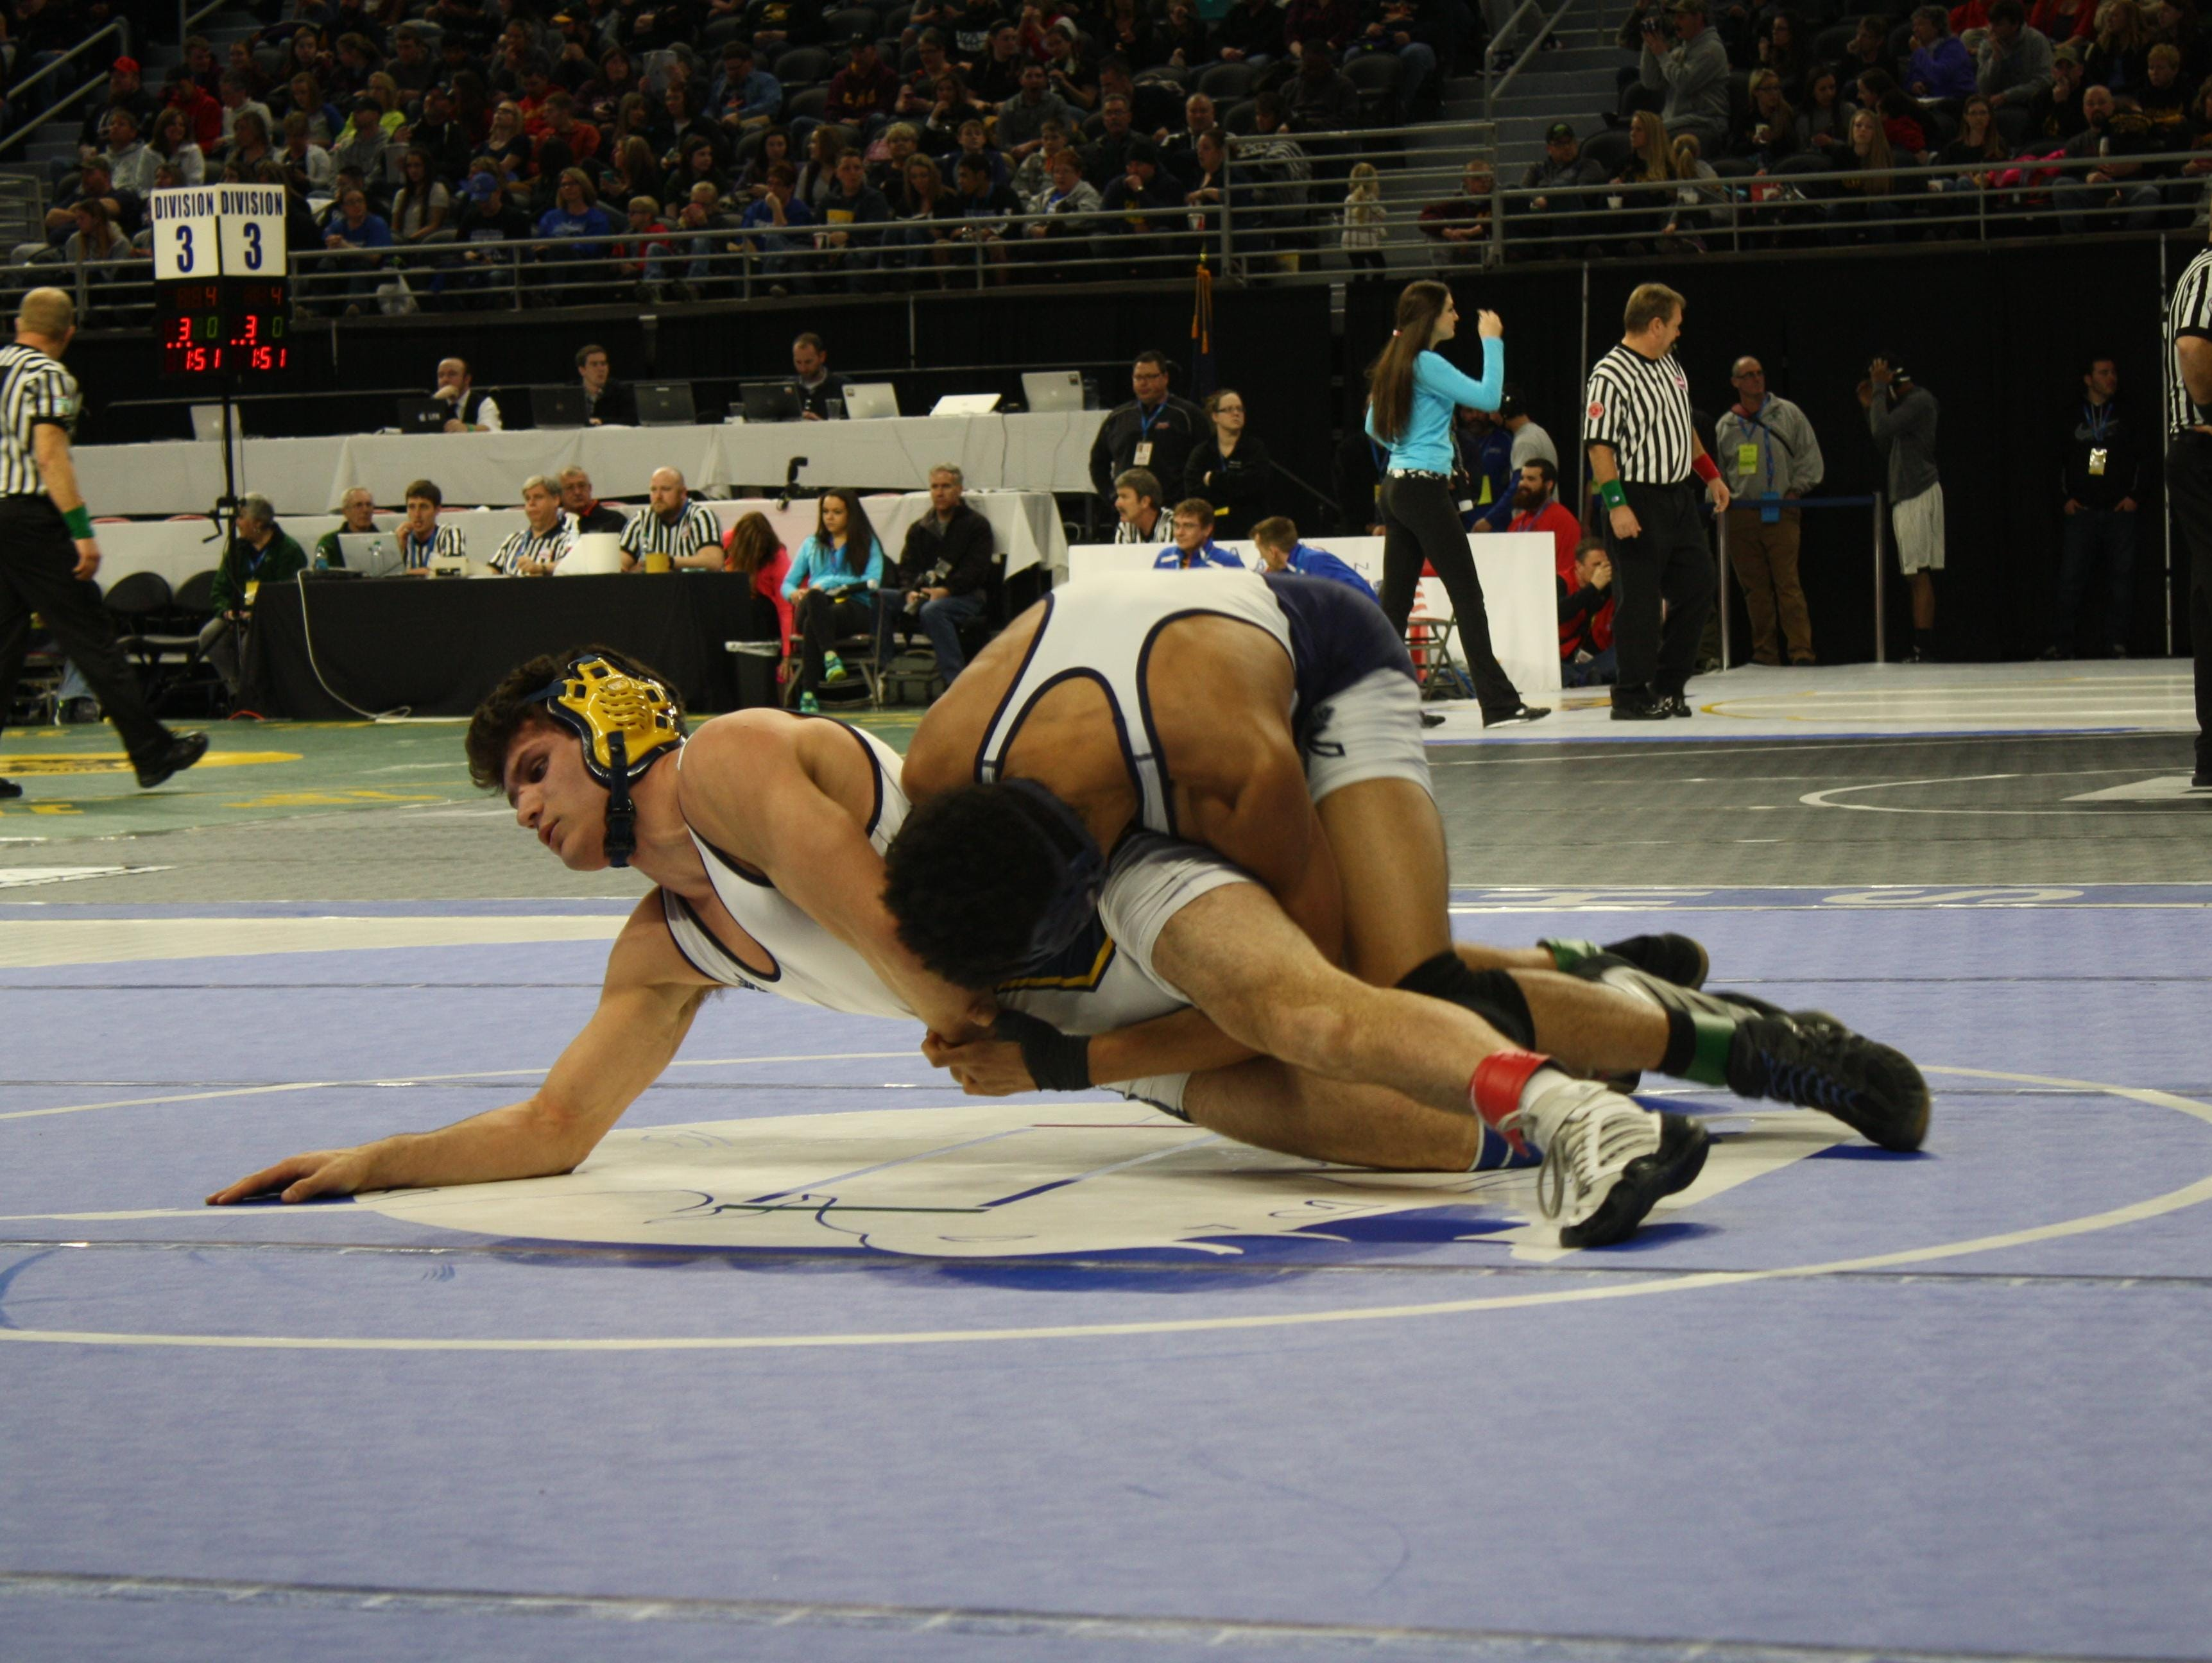 In a match at 152 pounds, Oxford's Devin Trevino tries to escape the hold of East Lansing's Malcym Carroll Thursday at the Palace of Auburn Hills.